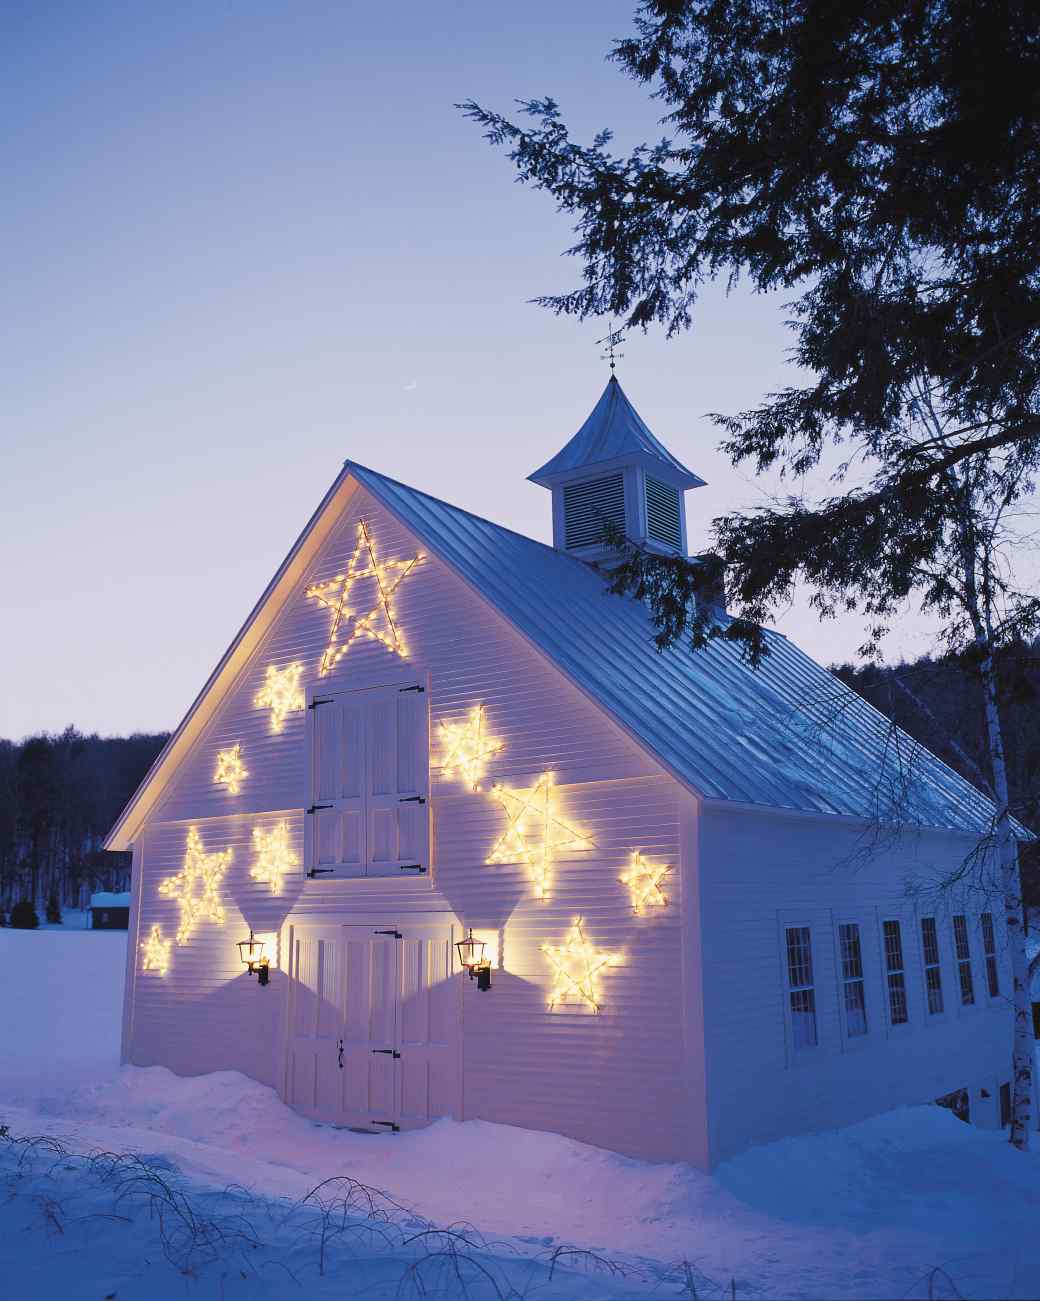 40 Outdoor Christmas Lights Decorating Ideas - All About Christmas